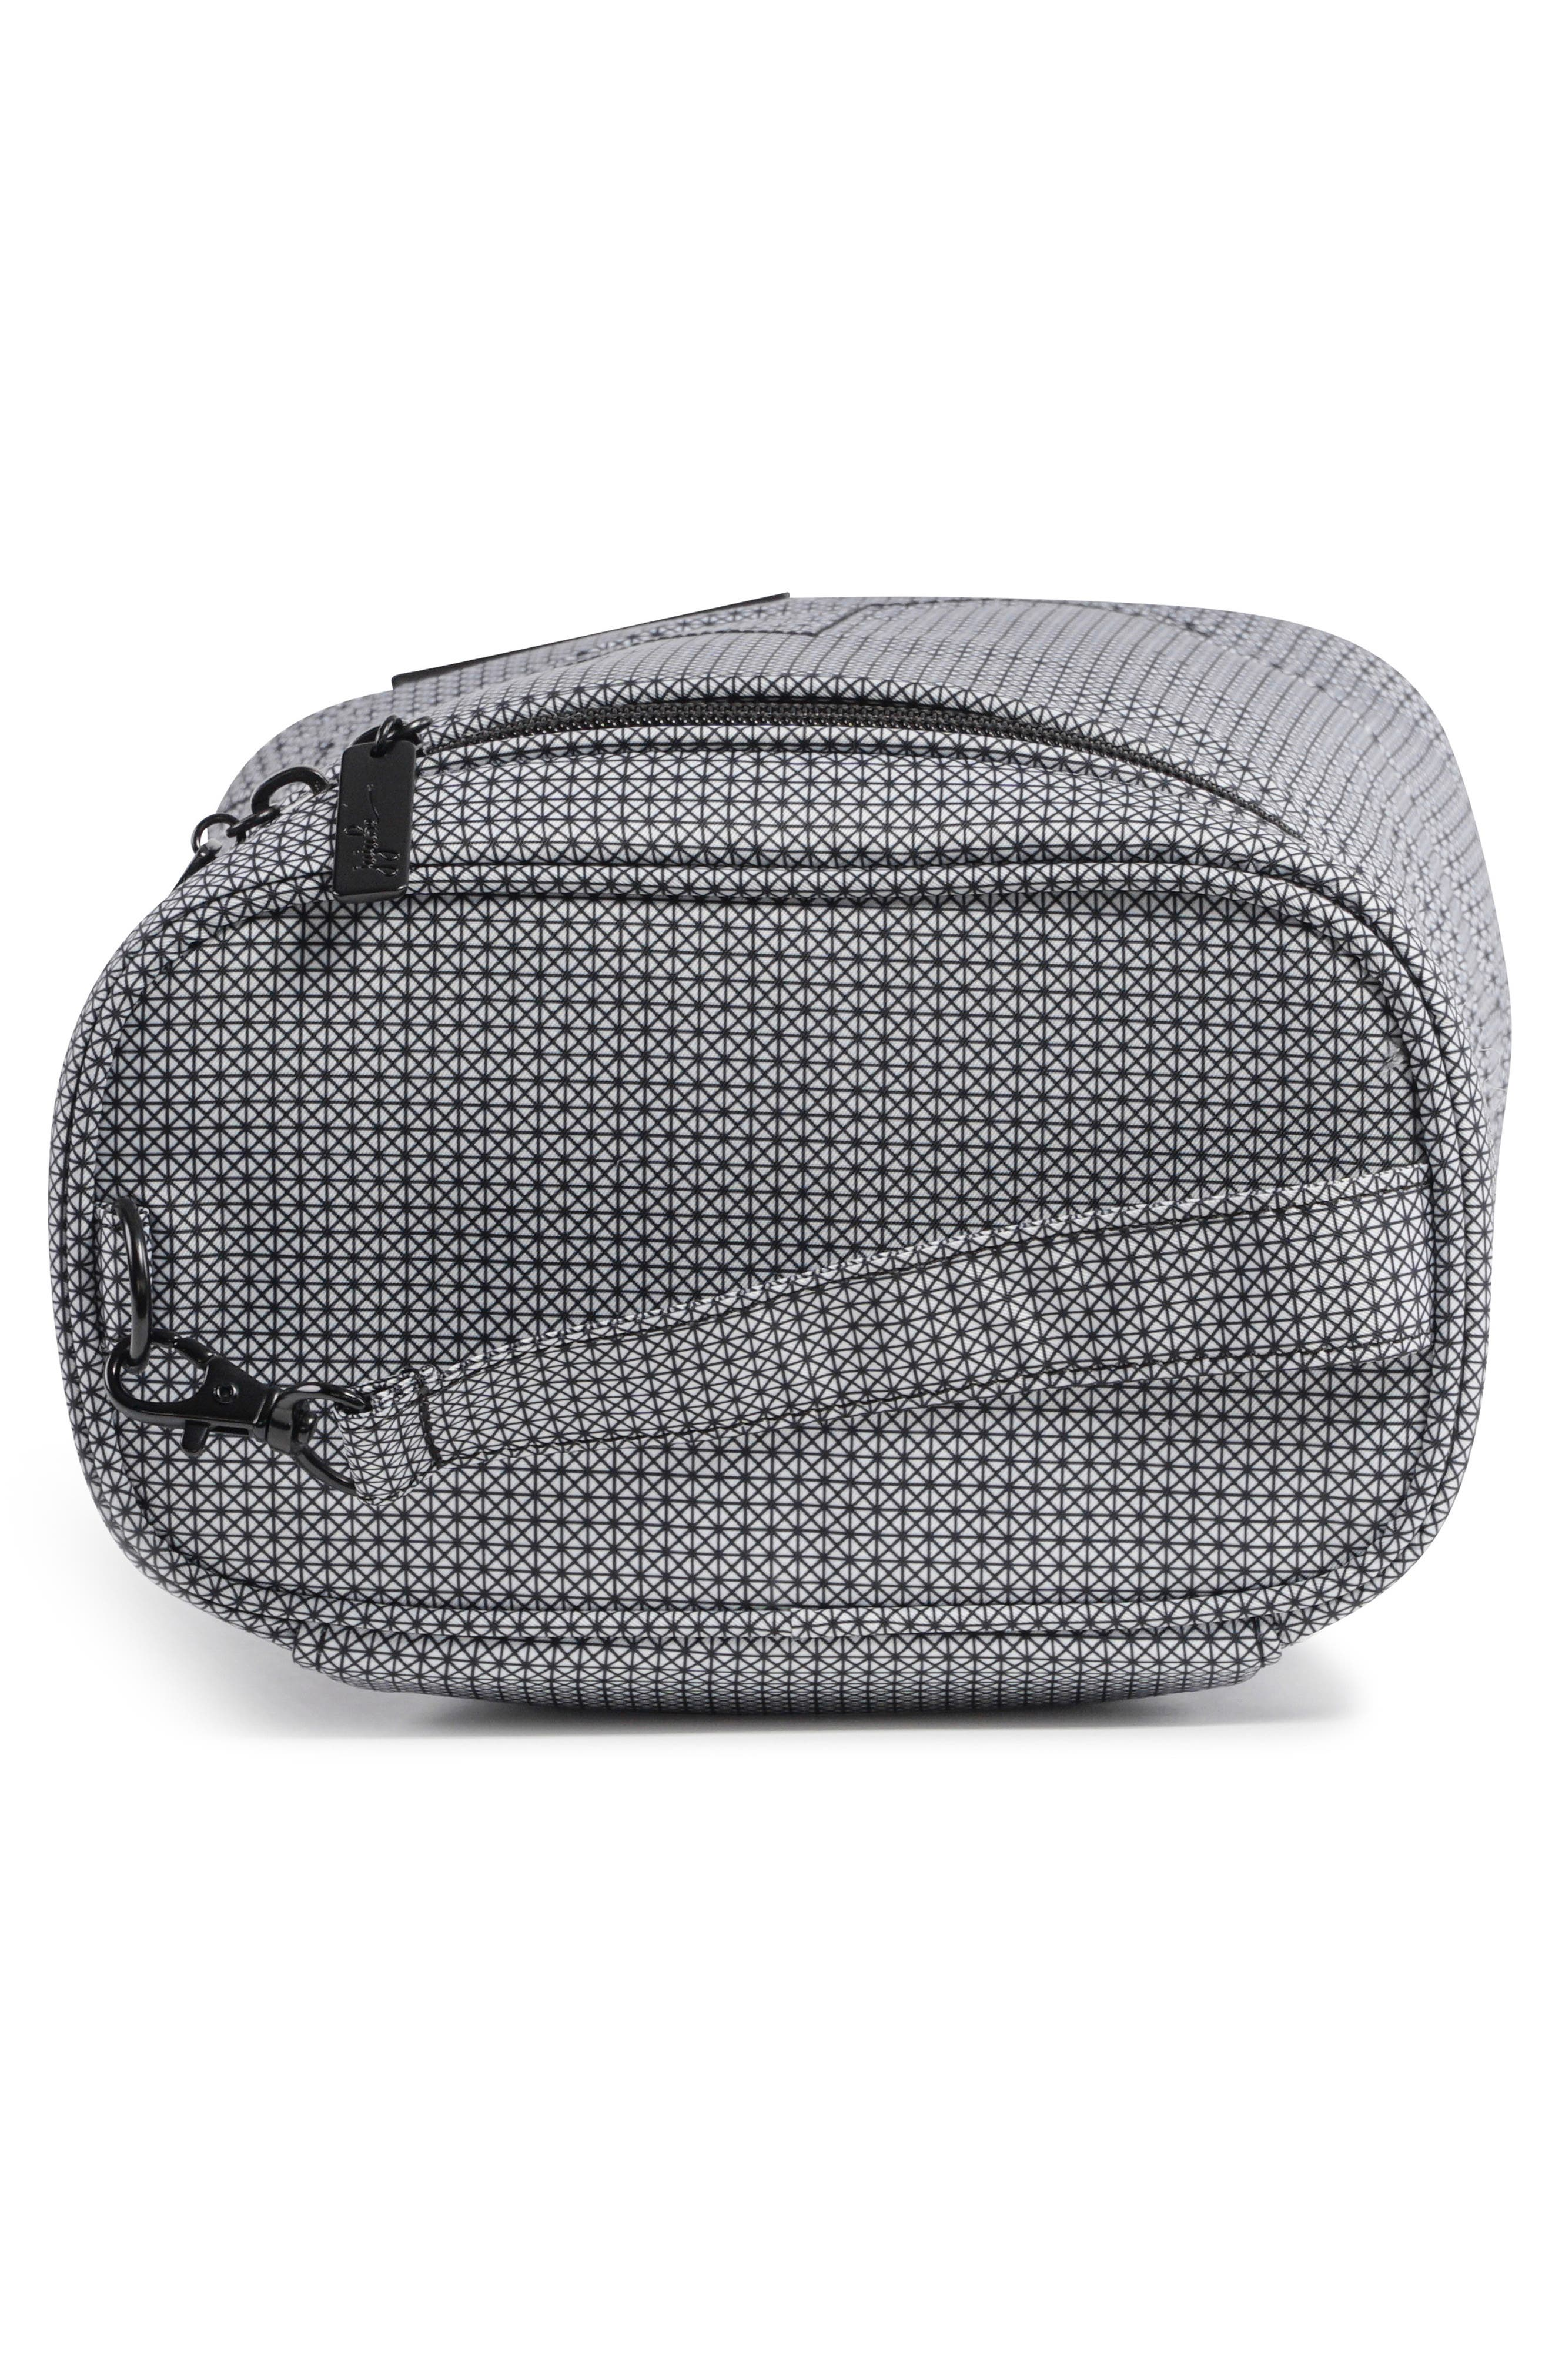 'Fuel Cell - Onyx Collection' Lunch Bag,                             Alternate thumbnail 4, color,                             Black Matrix